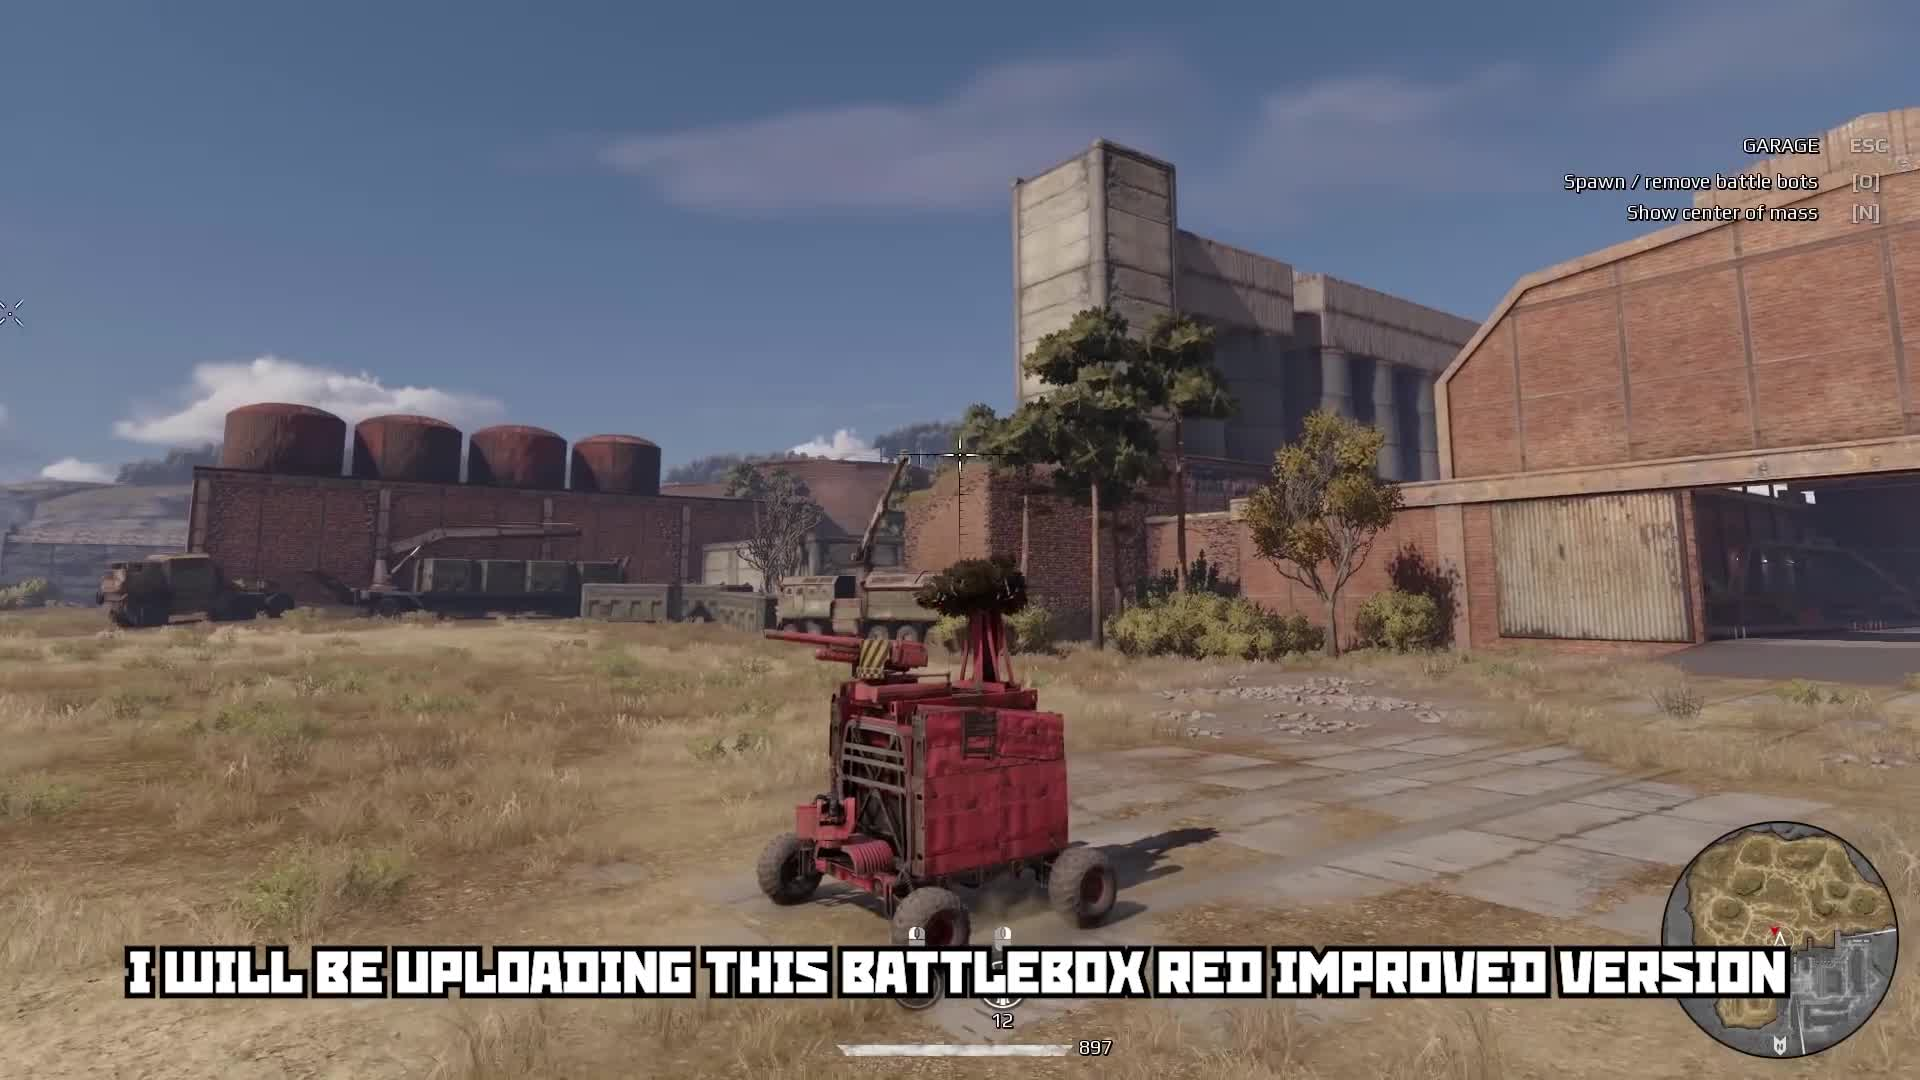 Russian closed captions, crossout, crossout story mode, english open captions, english subtitles, hardcoded subtitles, life of boris, life of boris youtube, russian CC, youtube life of boris, BATTLEBOX RED - Crossout gameplay GIFs